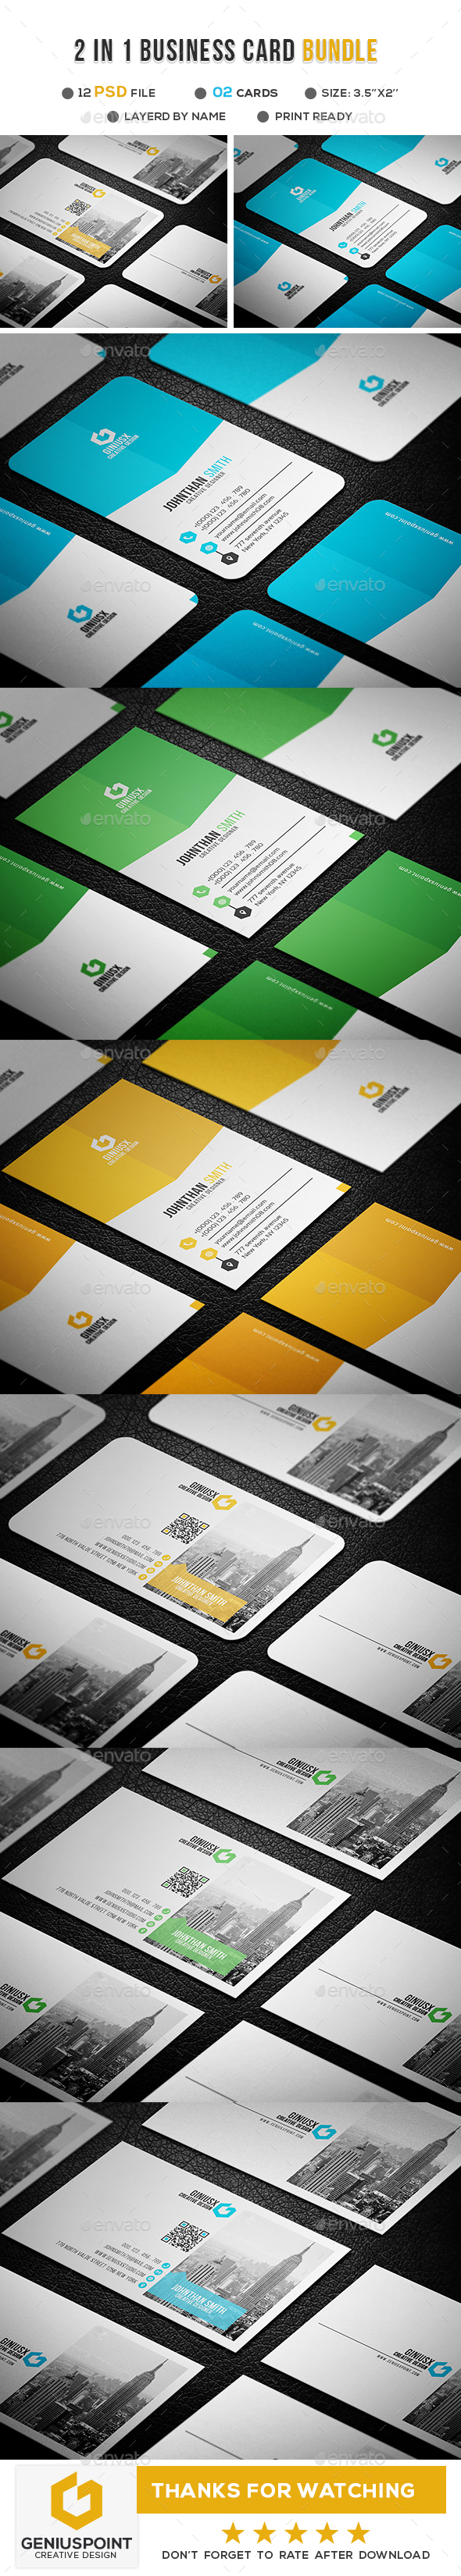 2 in 1 Business Card Bundle - Business Cards Print Templates